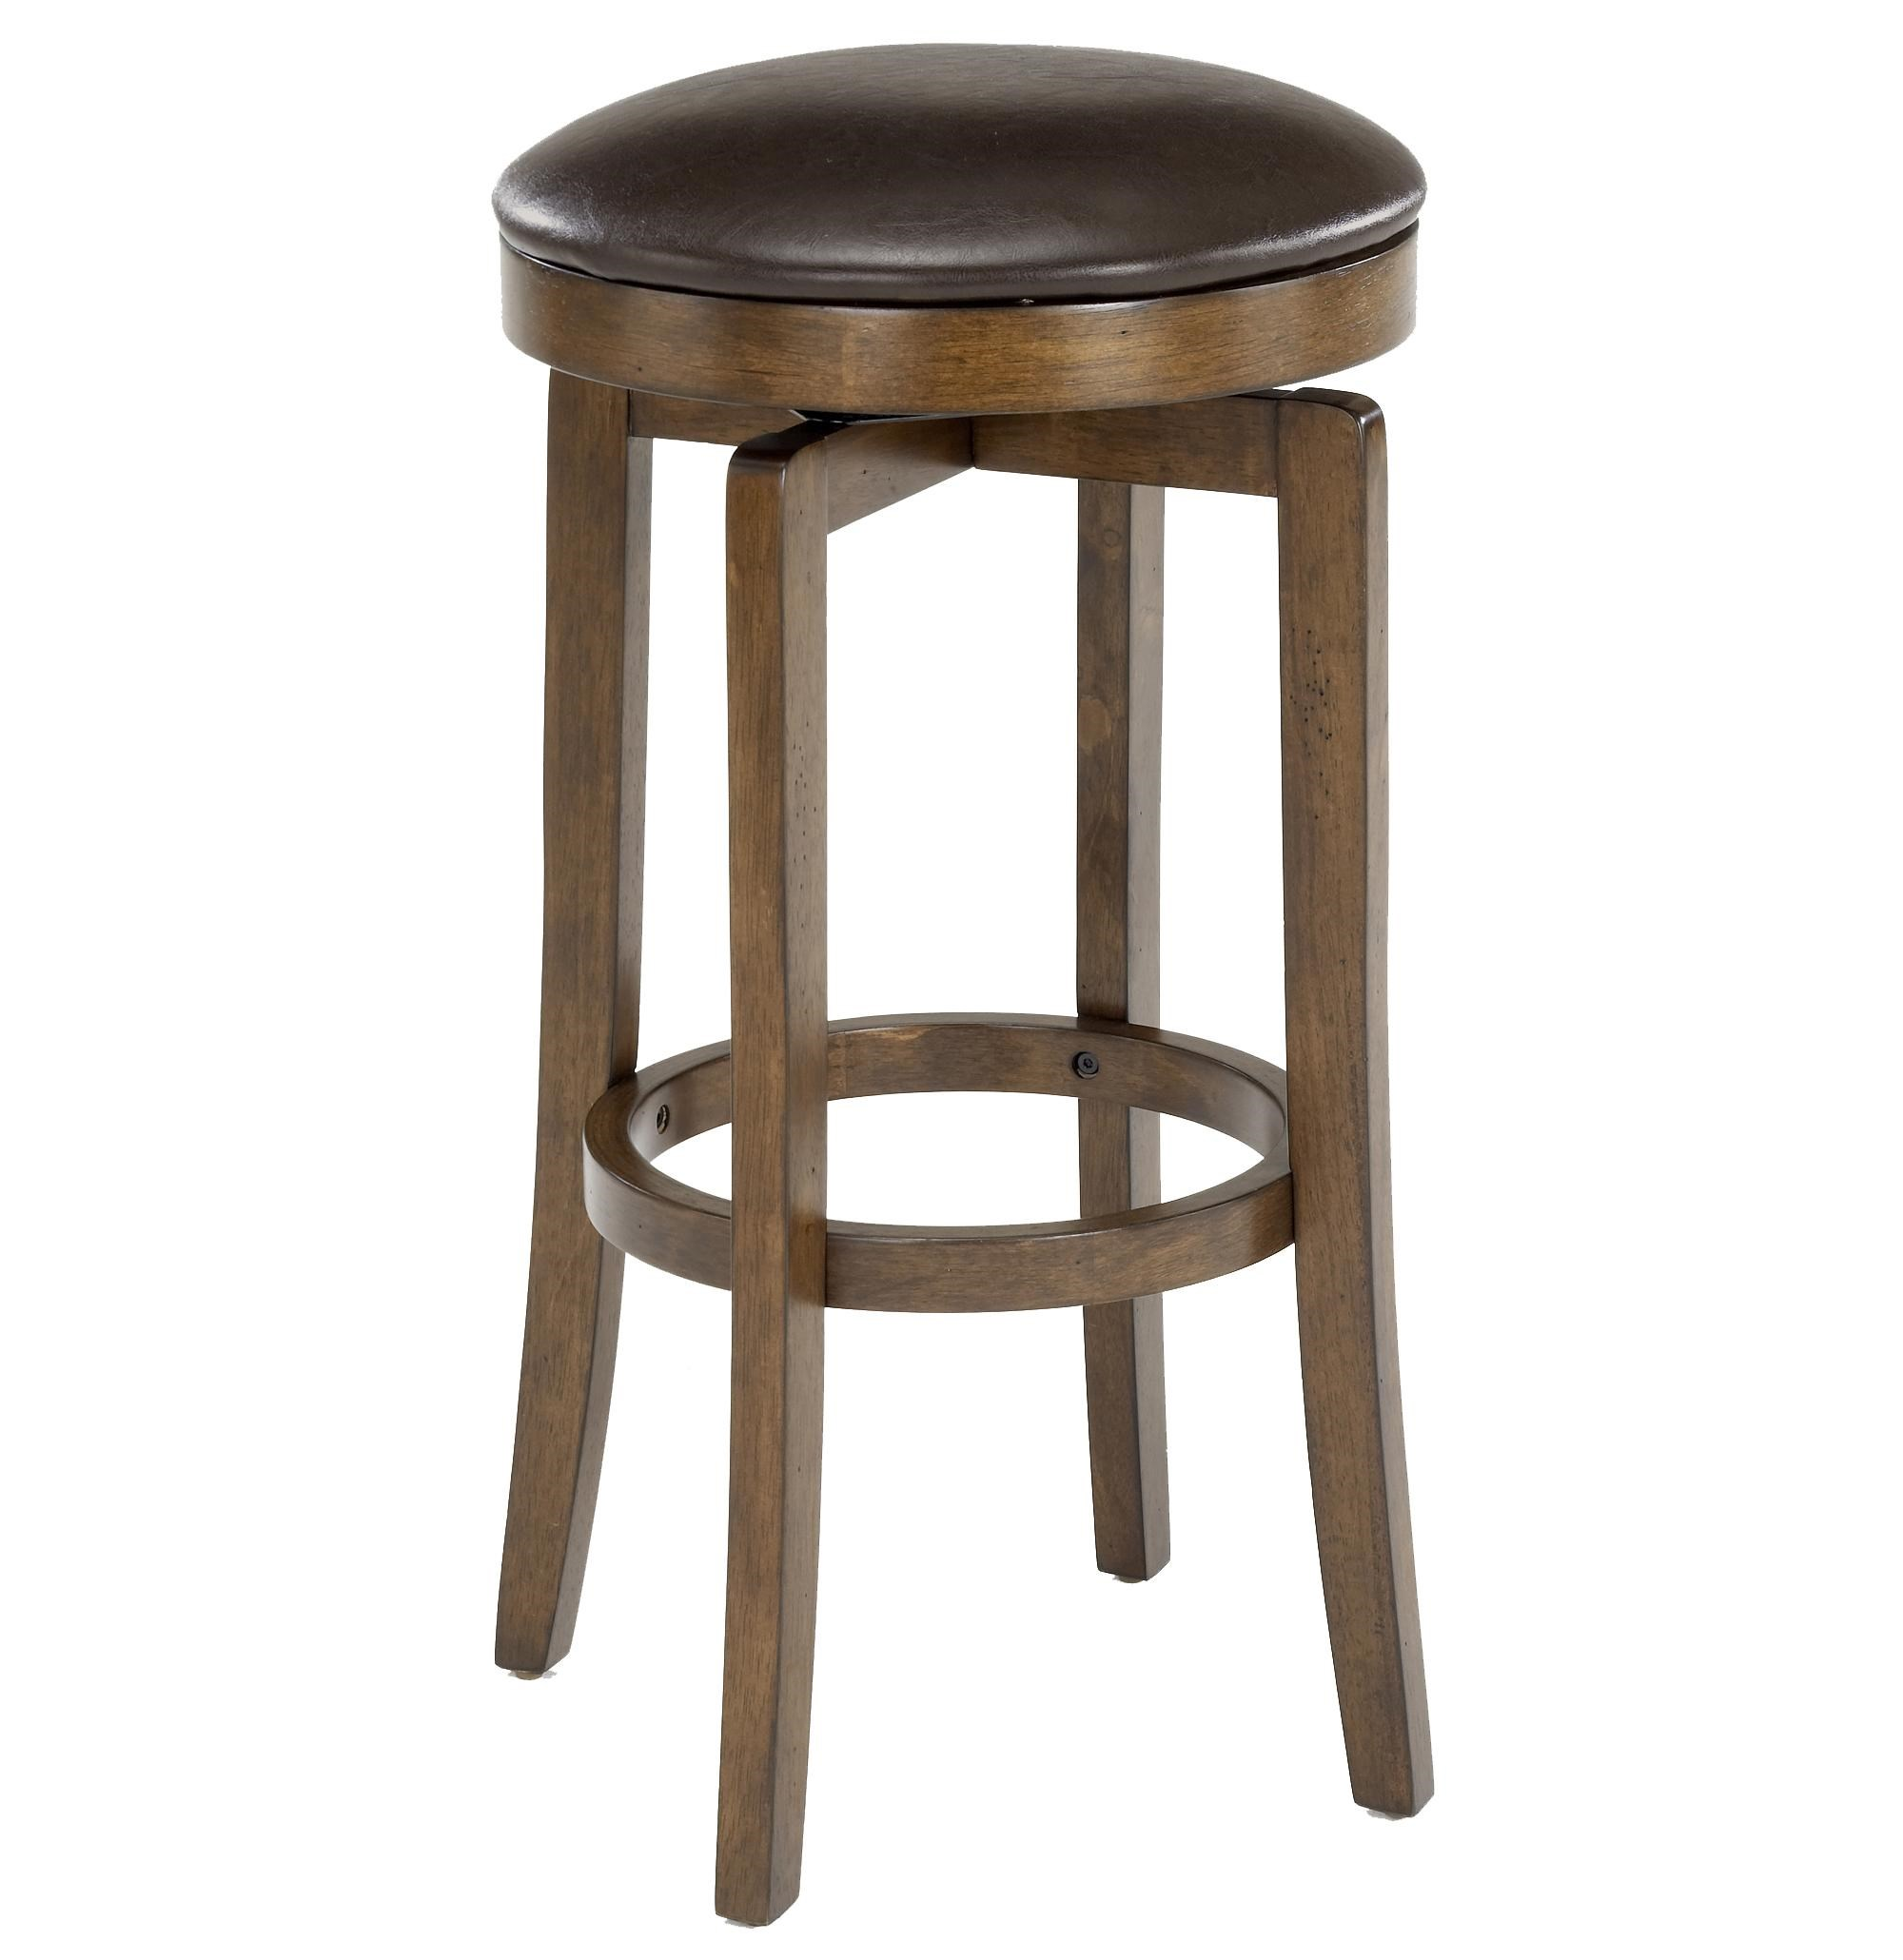 Hillsdale Backless Bar Stools 25quot Brendan Backless Counter  : backless20bar20stools63452 826 bjpgscalebothampwidth500ampheight500ampfsharpen25ampdown from www.godbyhomefurnishings.com size 500 x 500 jpeg 24kB